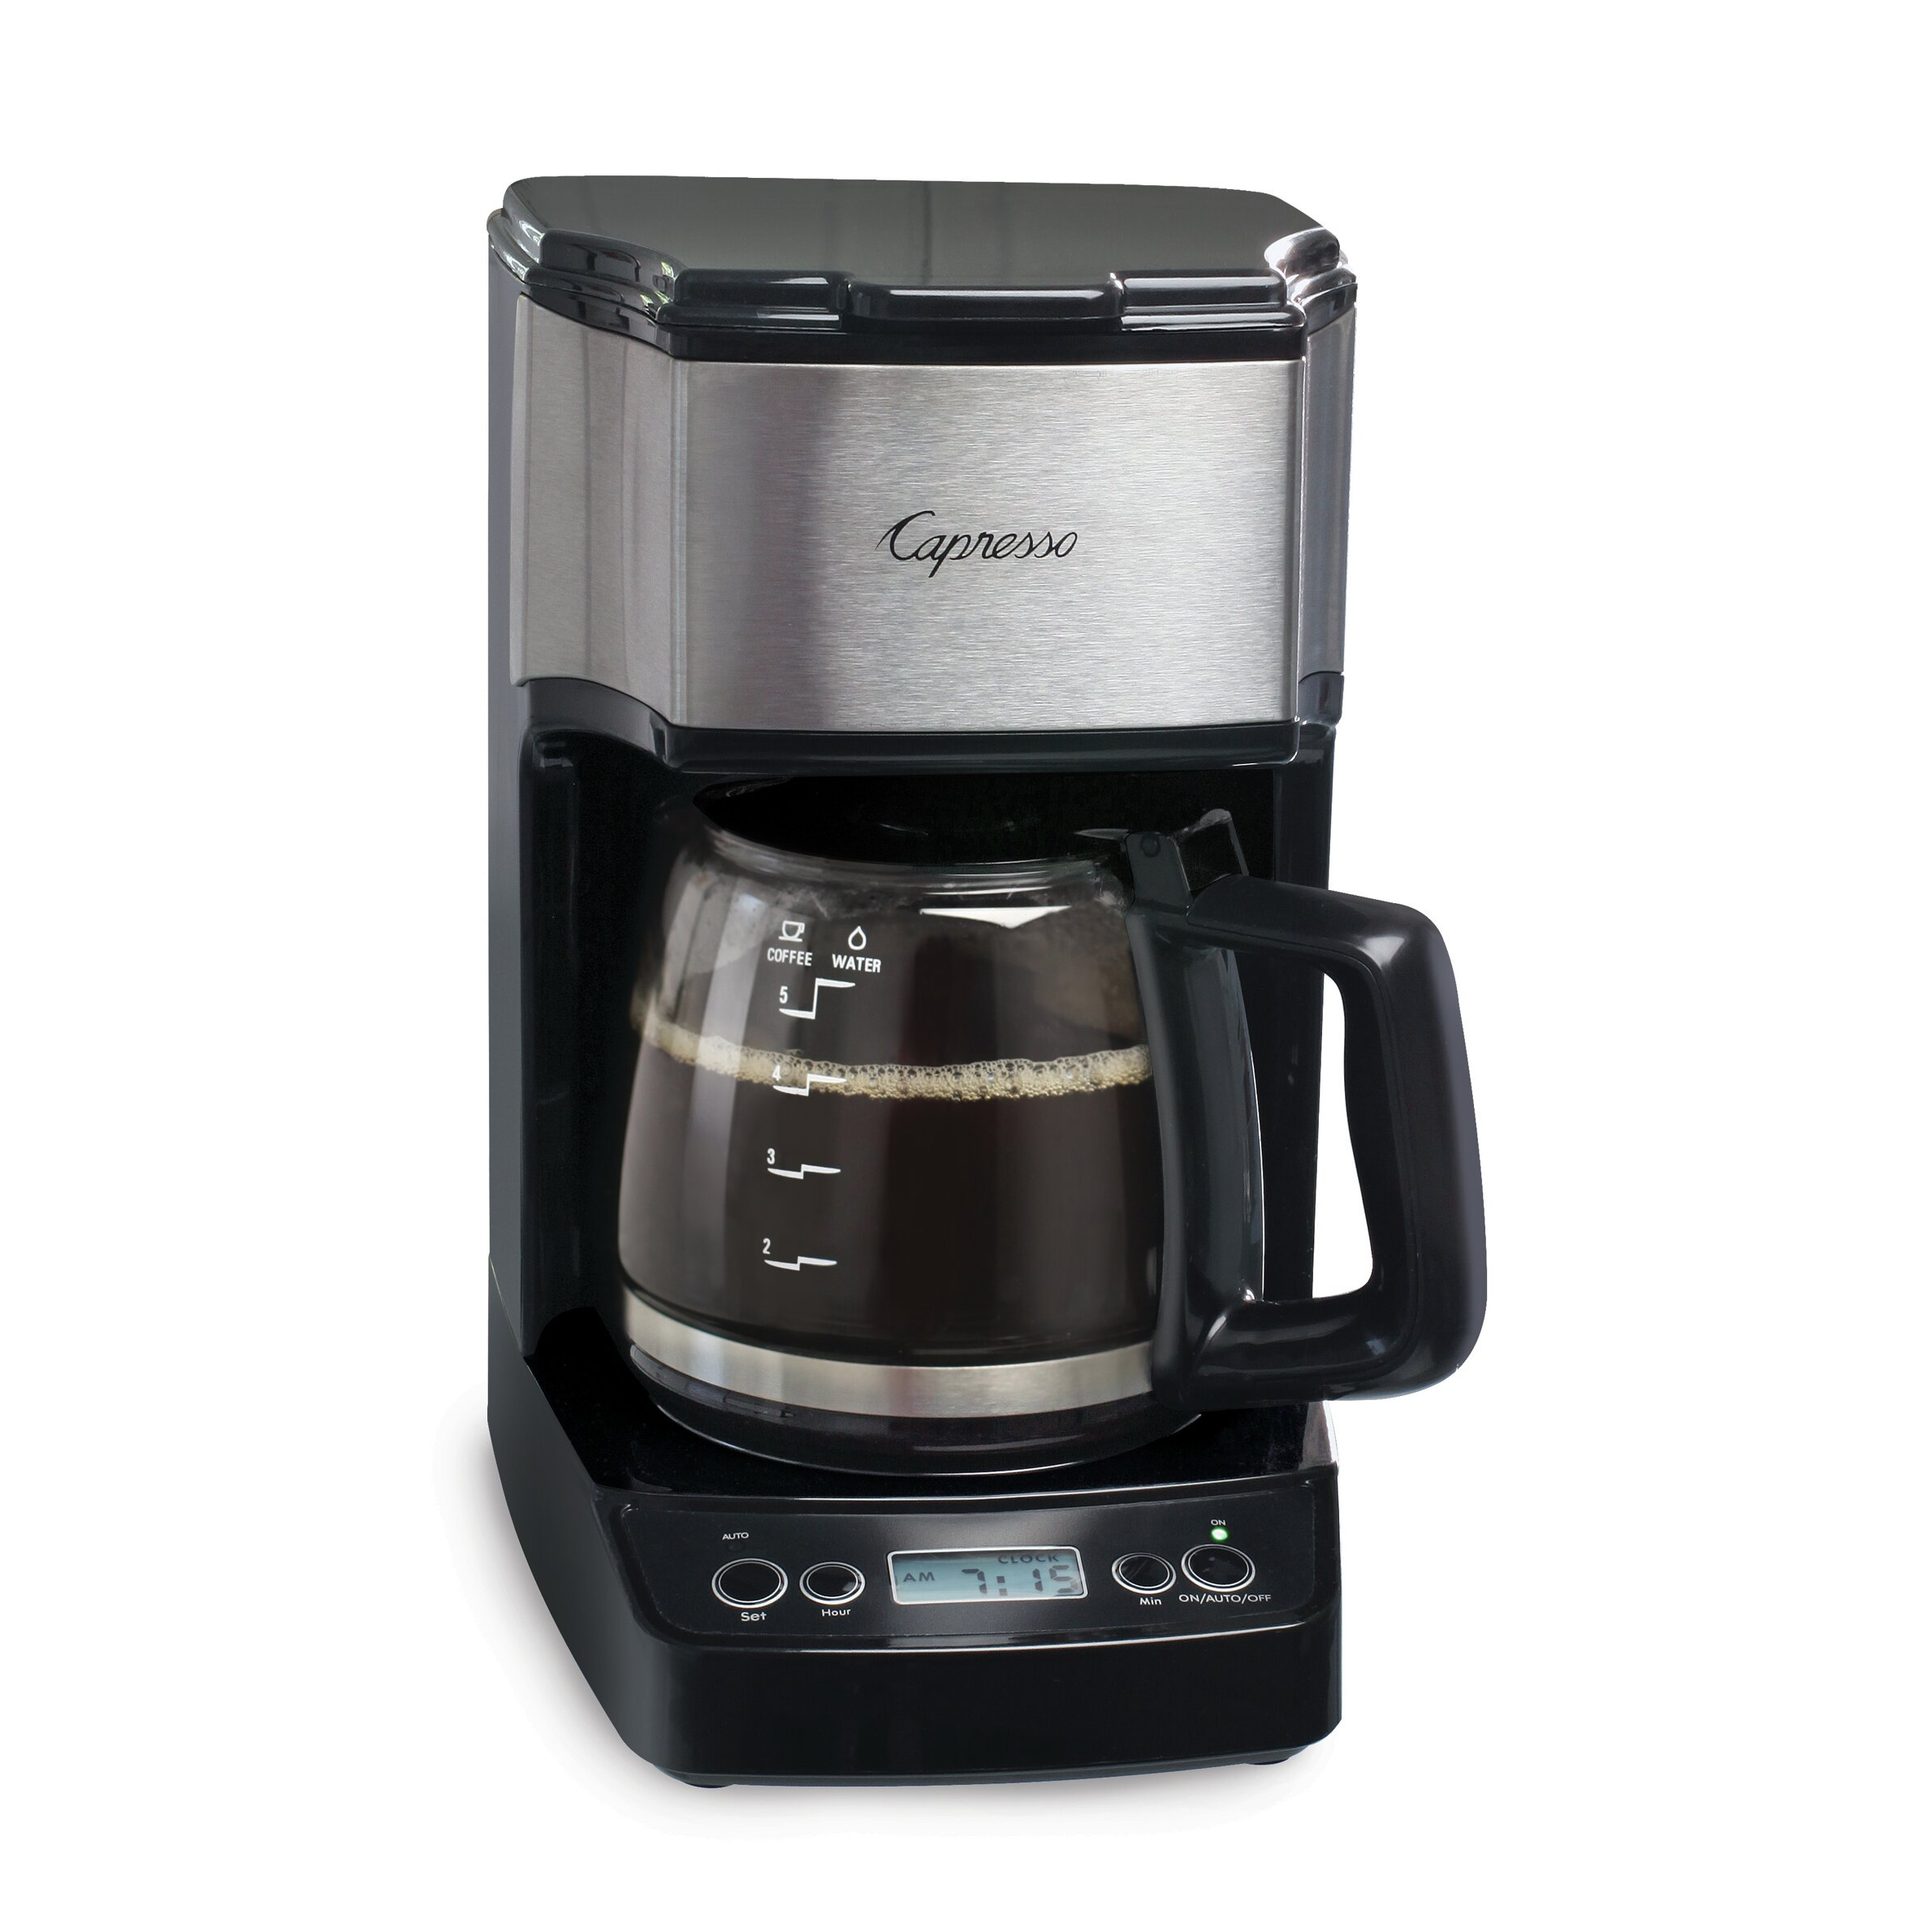 Drip Coffee Maker Pictures : Capresso 5-Cup Mini Drip Coffee Maker & Reviews Wayfair